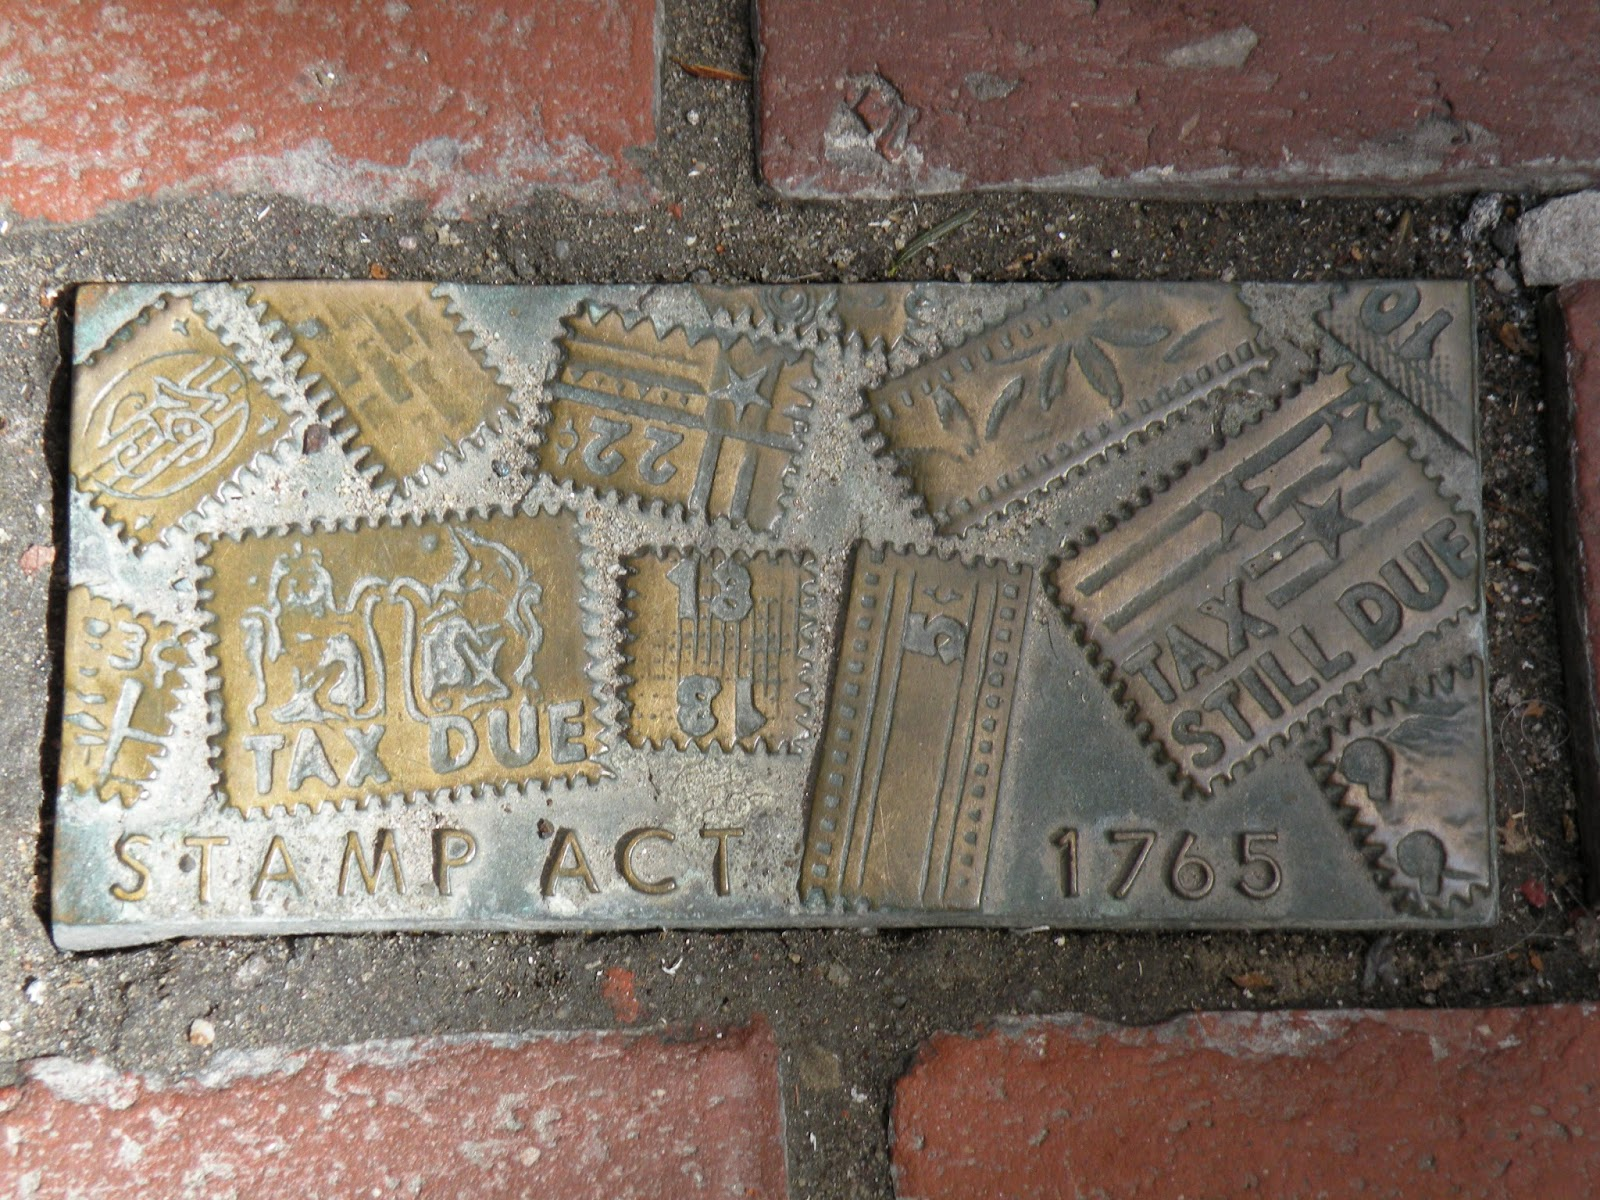 Stamp Act 1765 bronze brick Monument